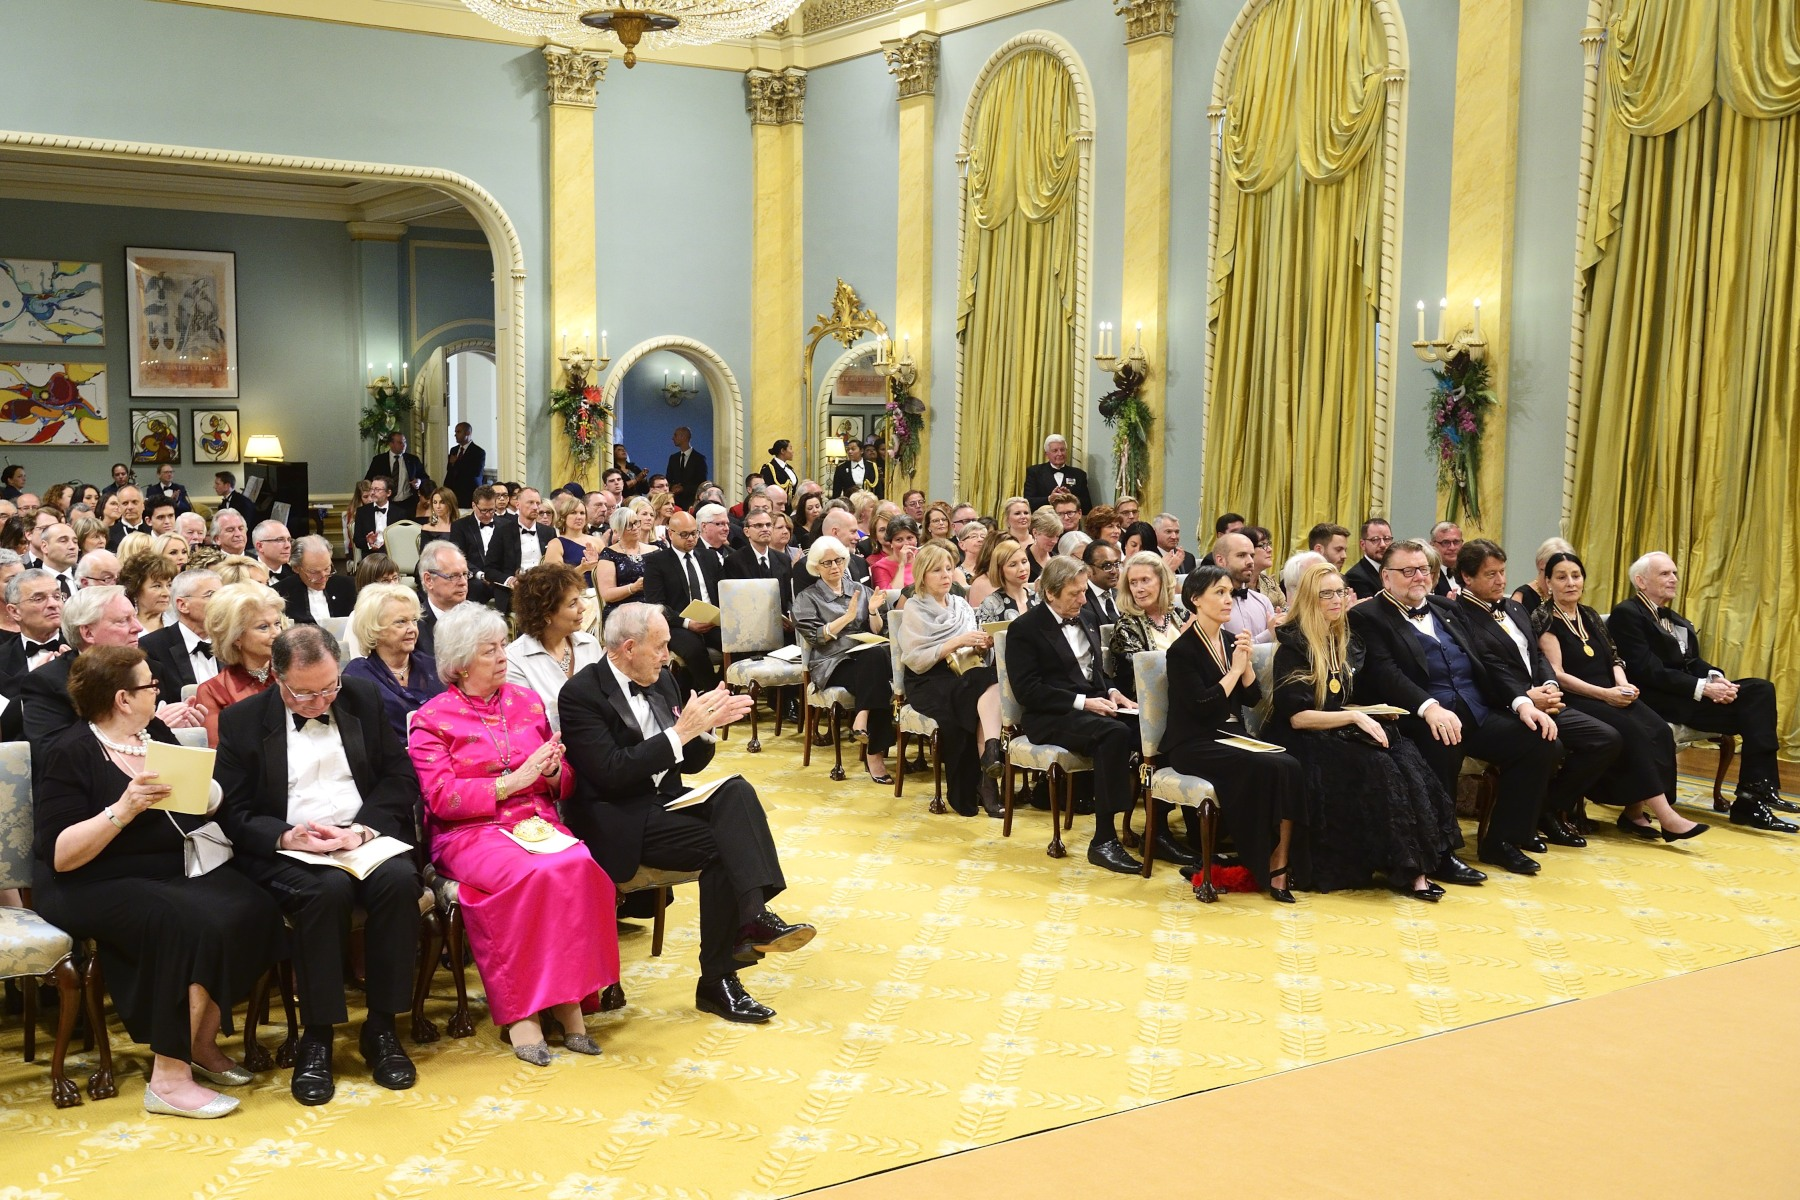 Once again, the ceremony took place in Rideau Hall's Ballroom.